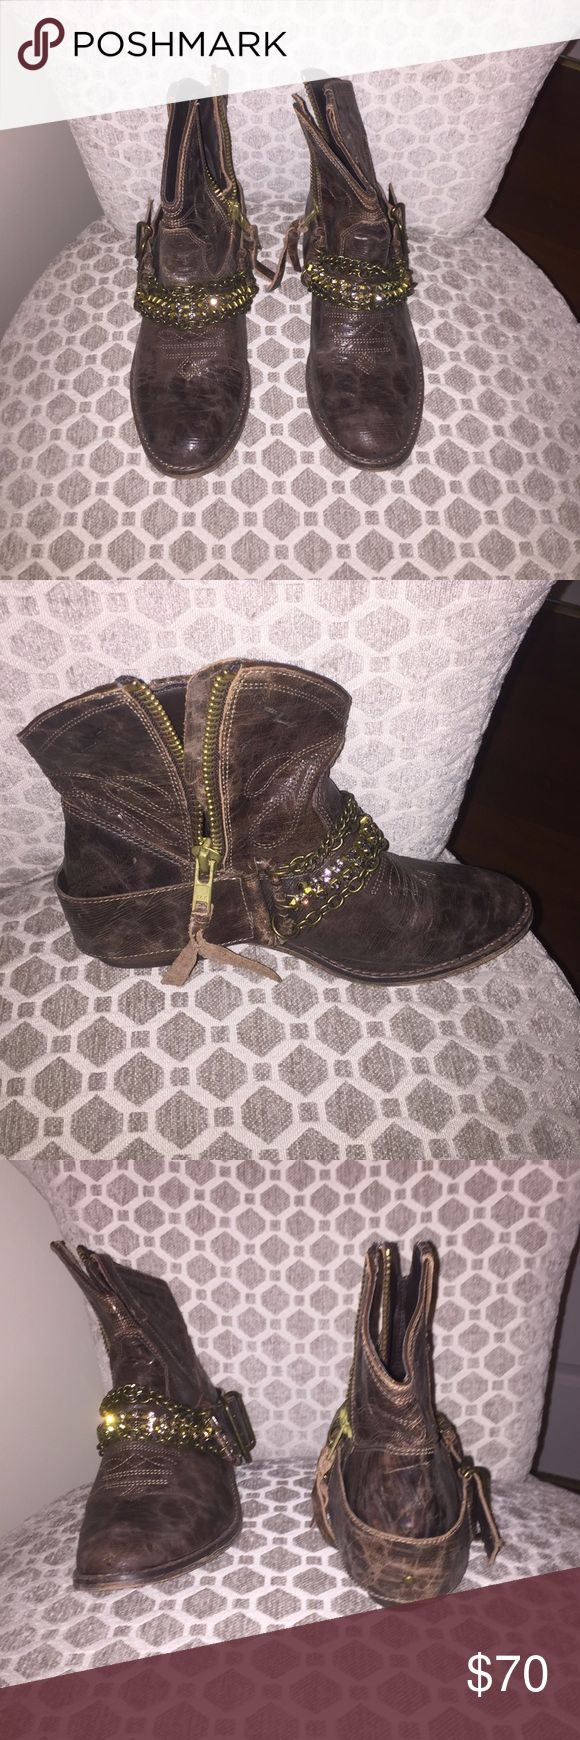 Steve Madden boots. Worn once. Brown Steve Madden boots only worn once. Very cute when paired with a flowy summer dress. Steve Madden Shoes Ankle Boots & Booties